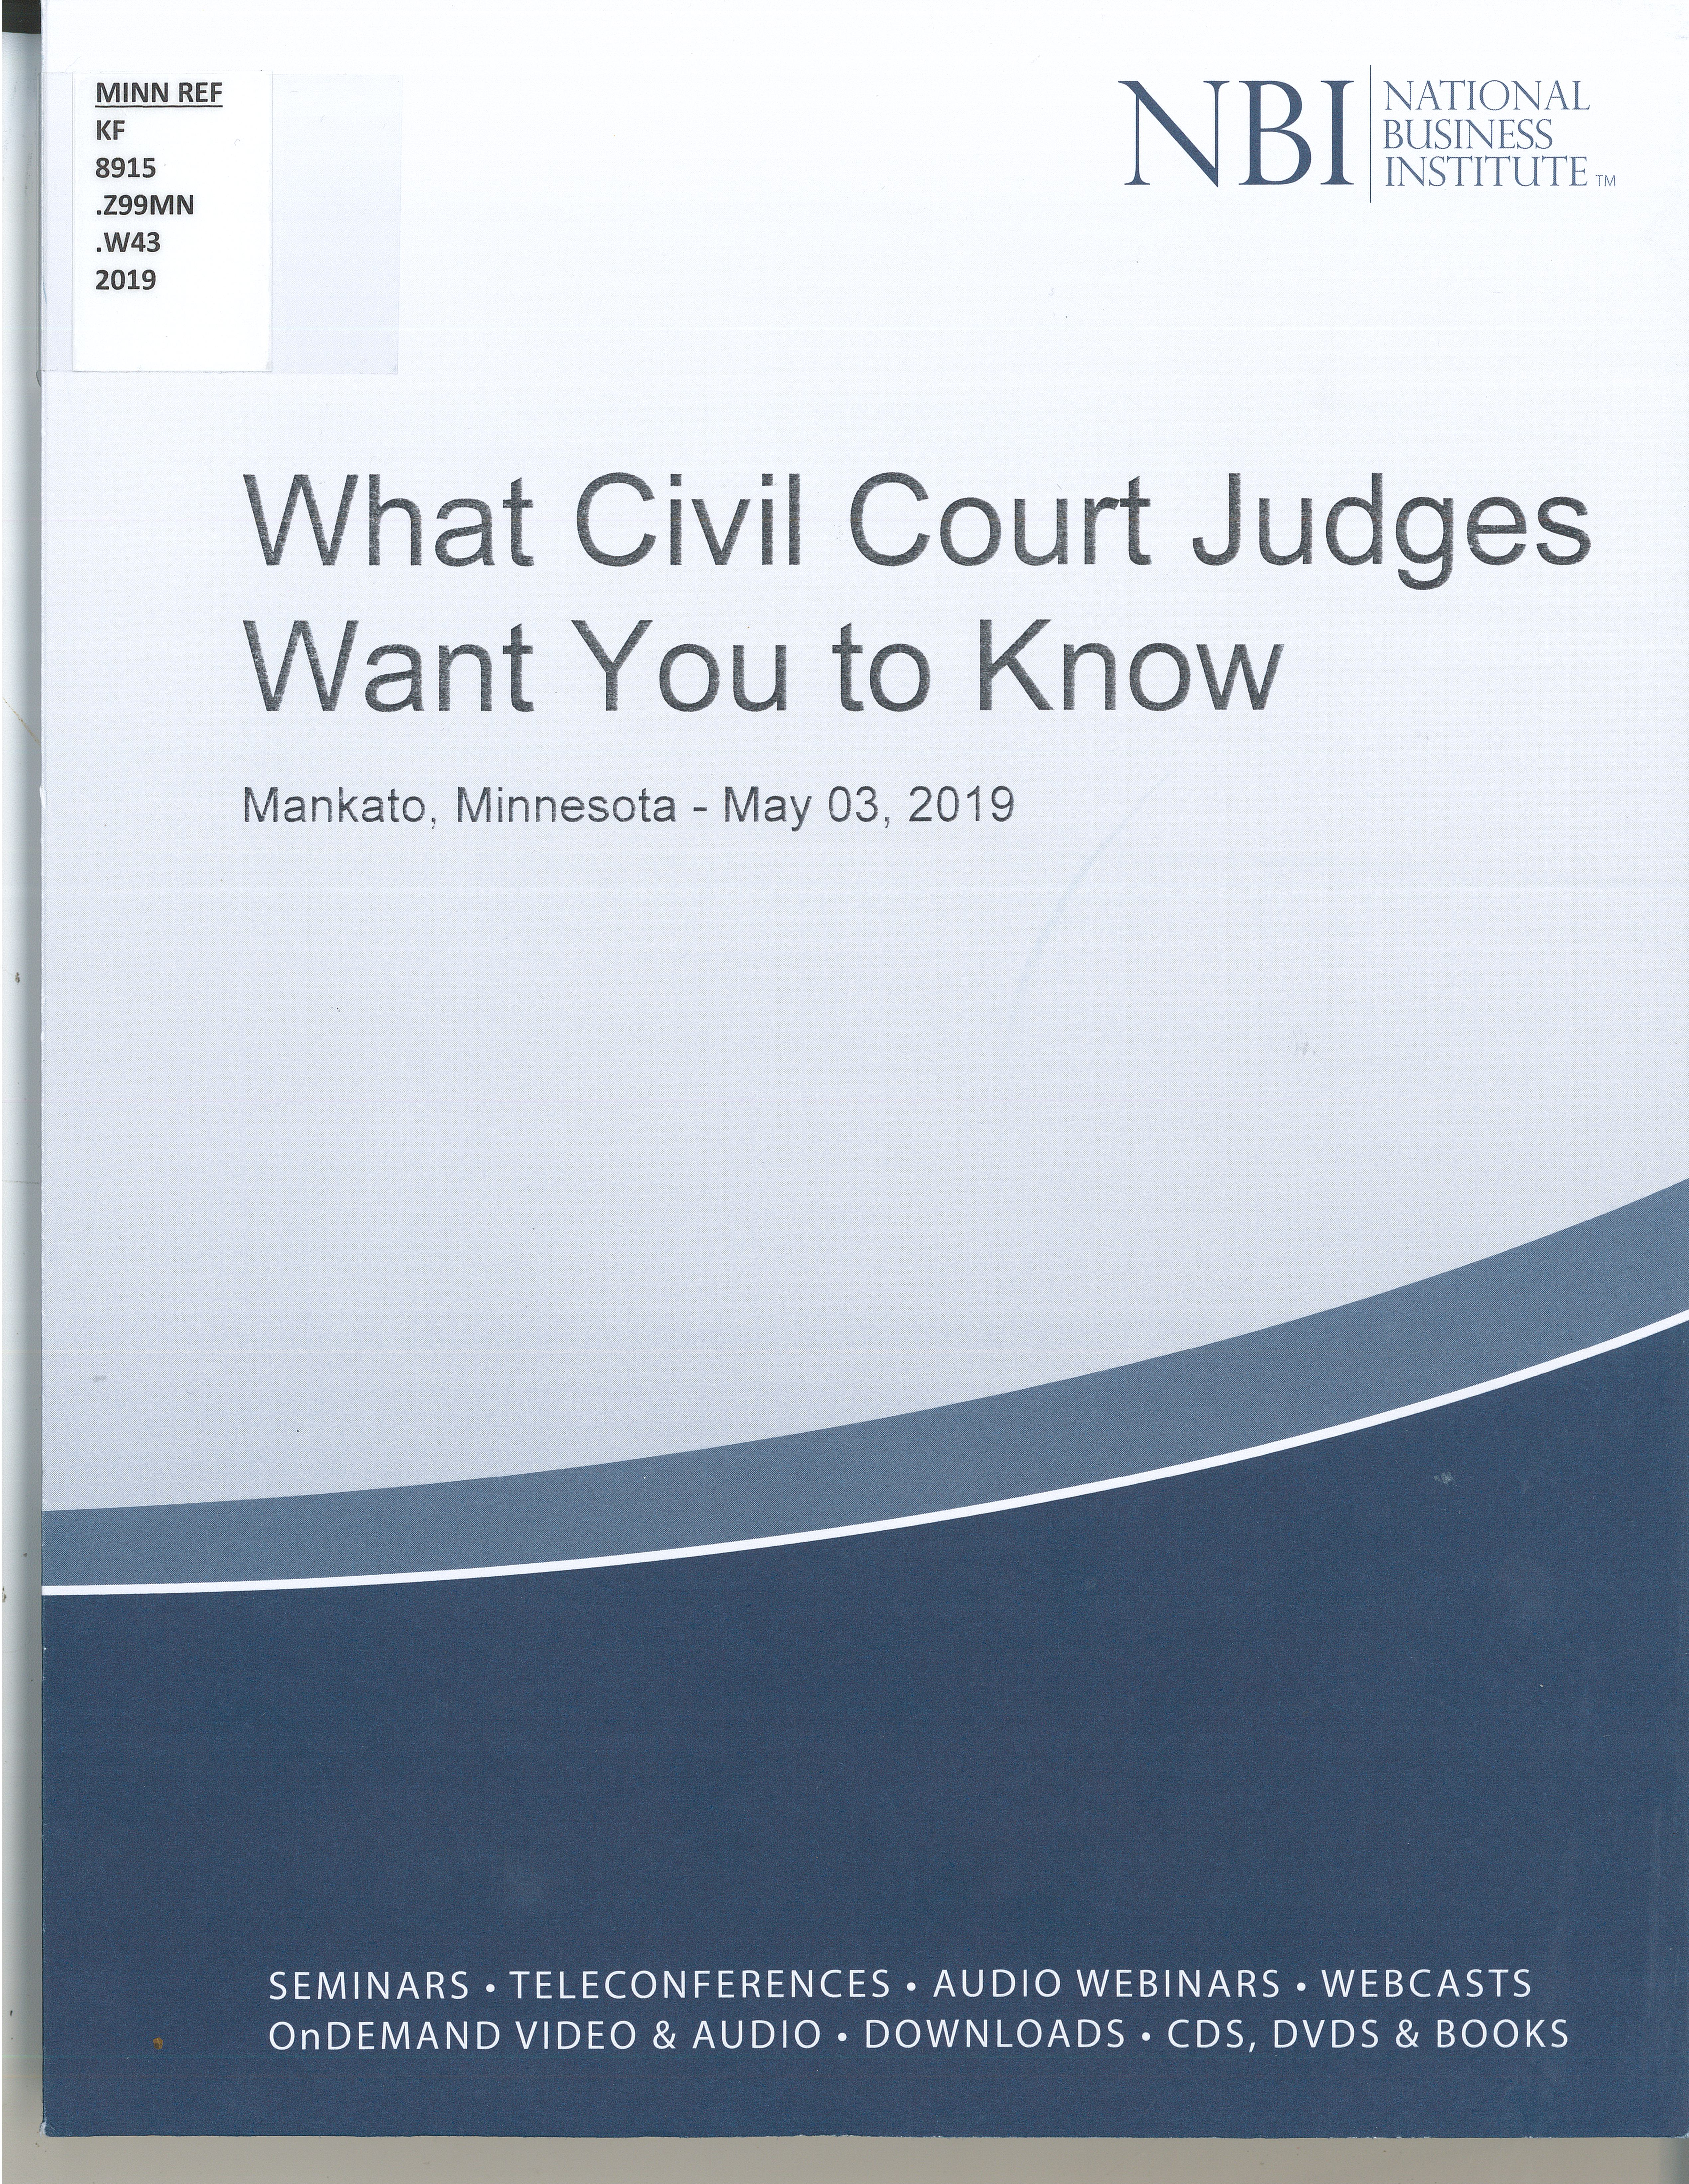 What Civil Court Judges Want You To Know